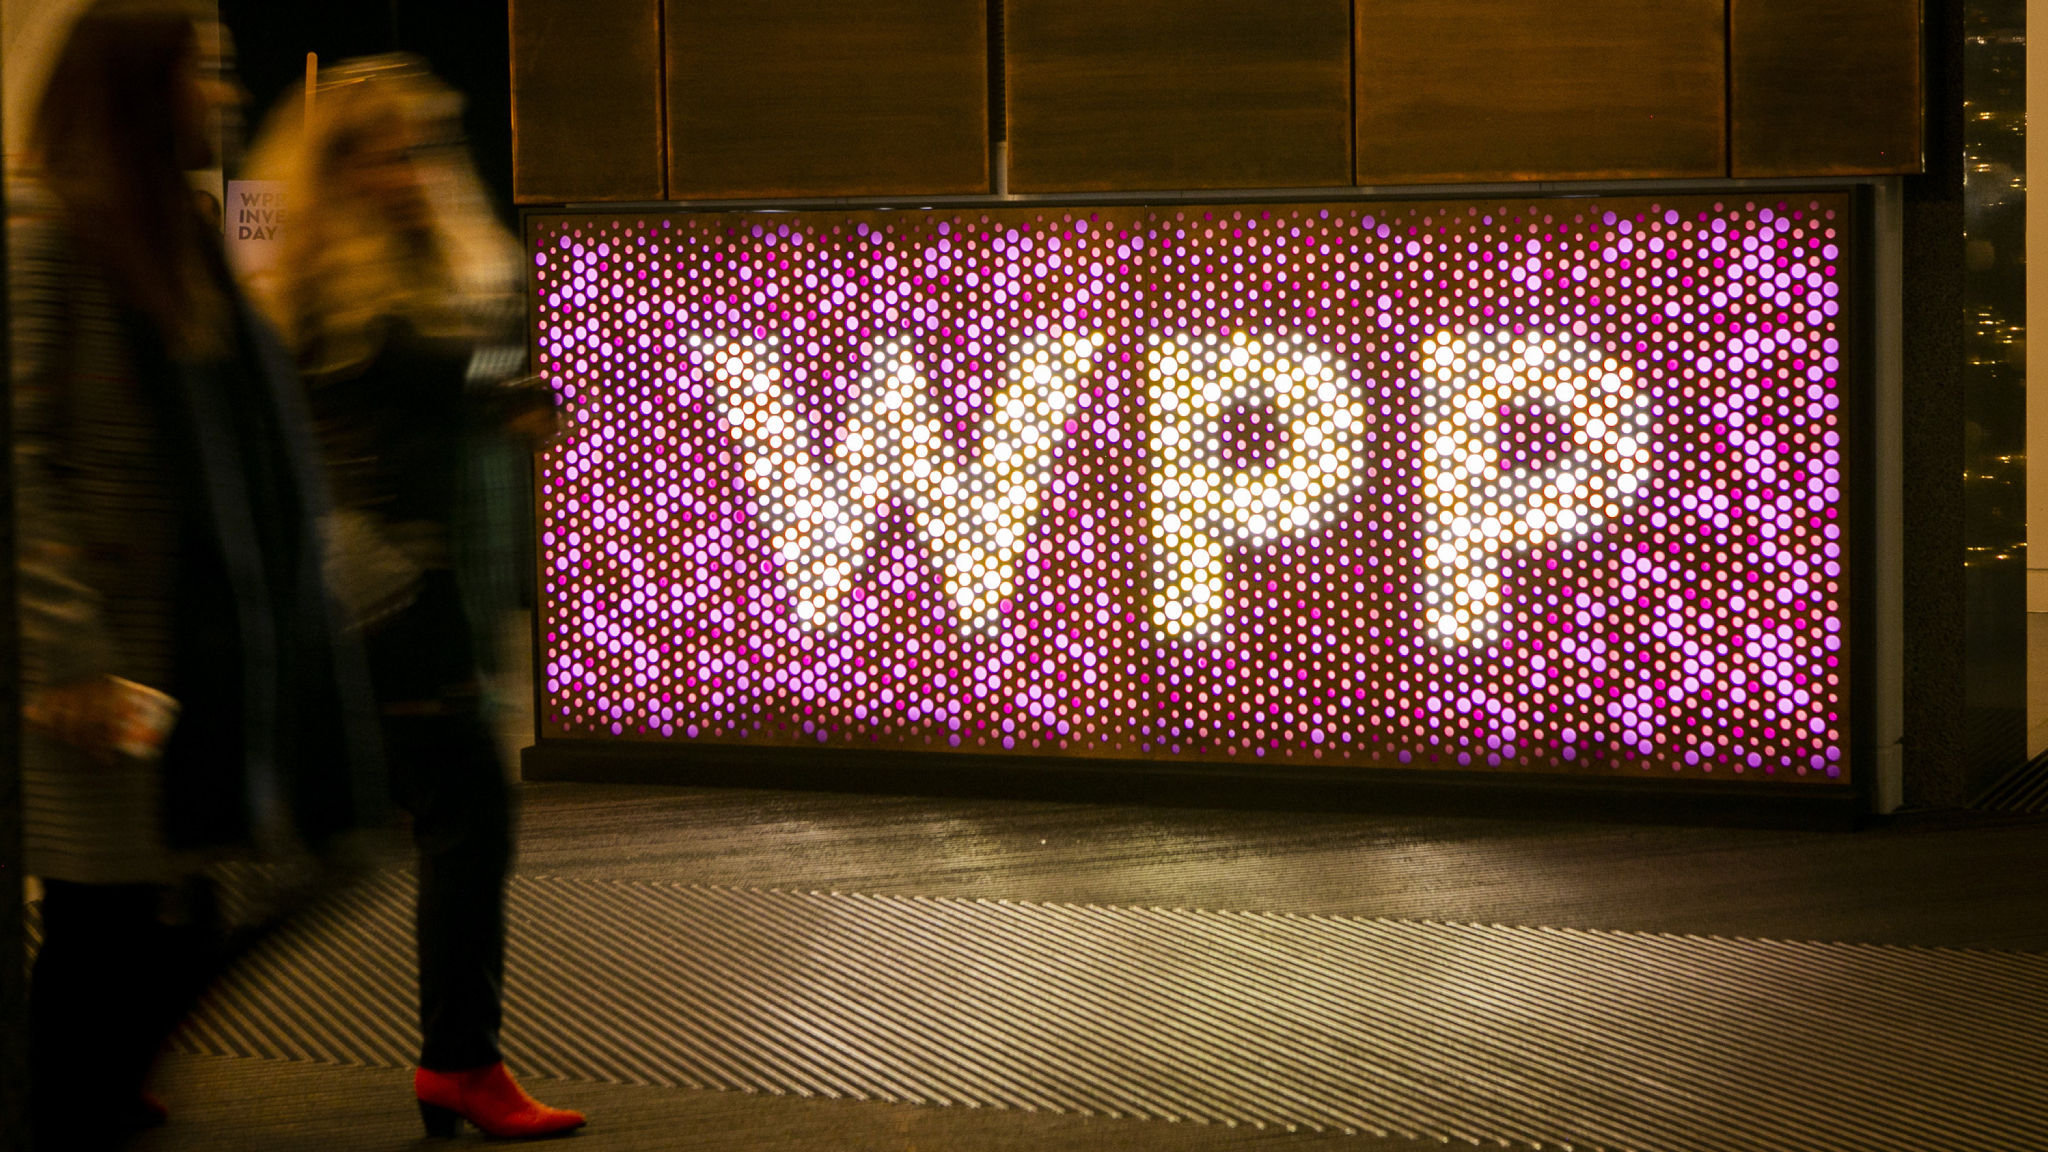 WPP hires Walmart executive as head of talent management